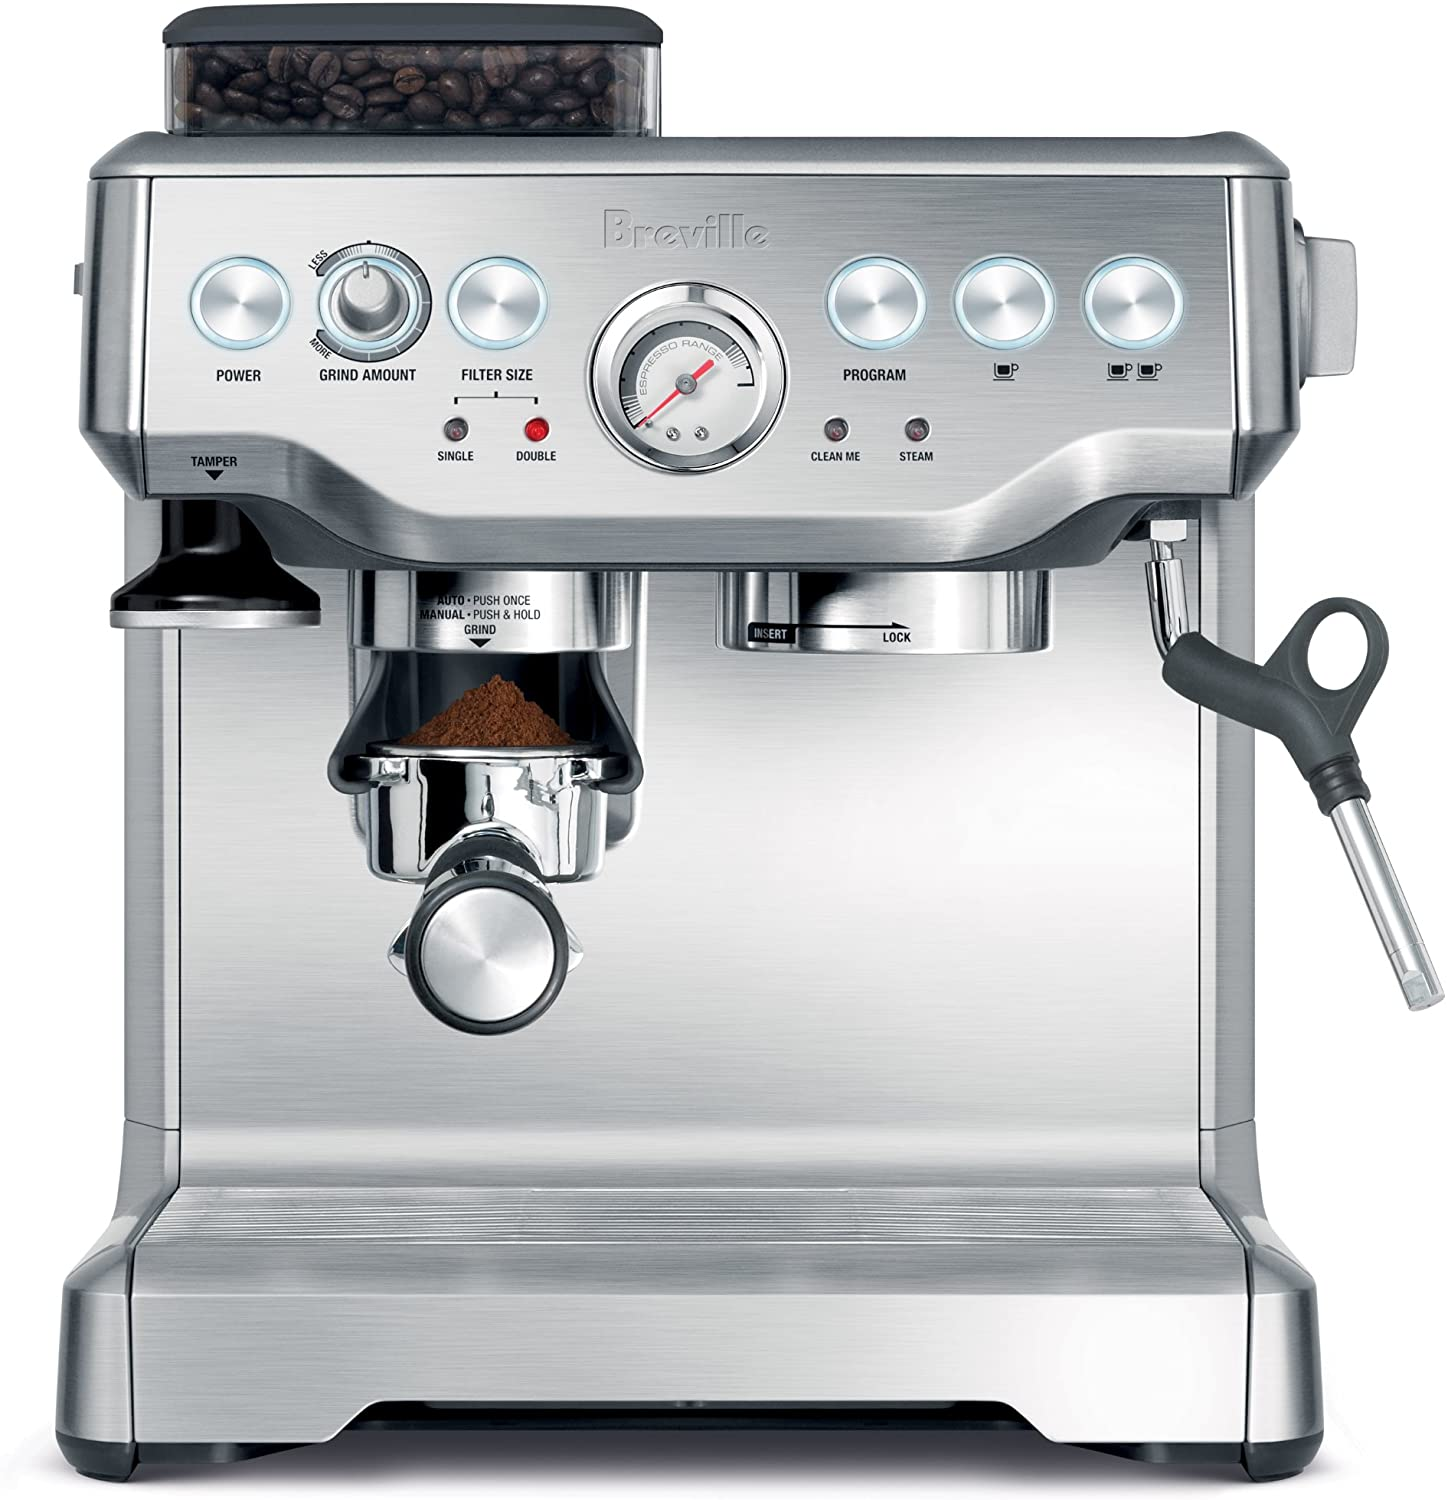 Breville Barista Express - Best bean to cup coffee machine